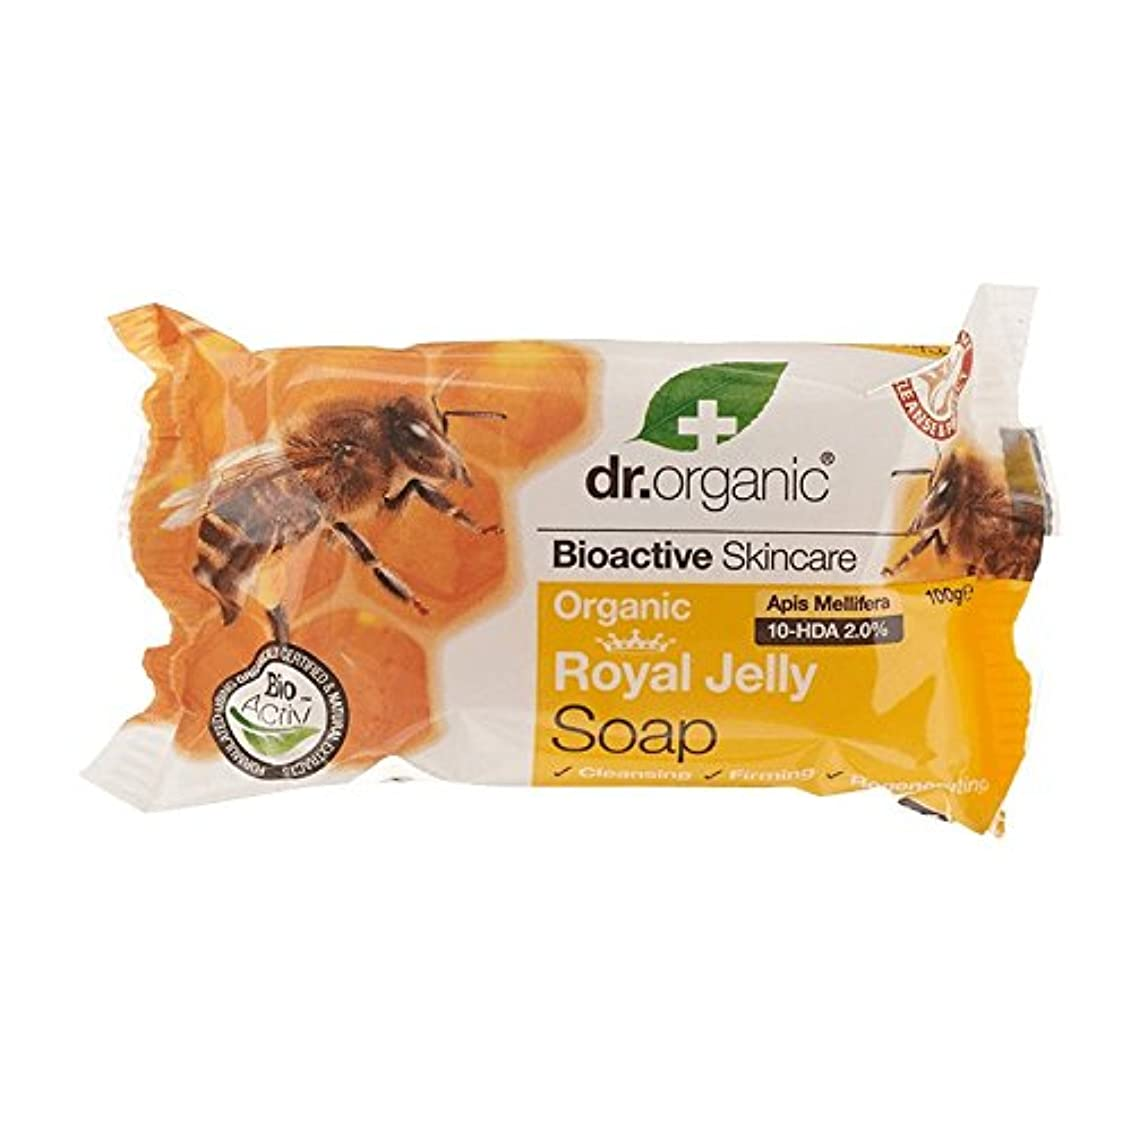 Dr Organic Royal Jelly Soap (Pack of 2) - Dr有機ローヤルゼリーソープ (x2) [並行輸入品]